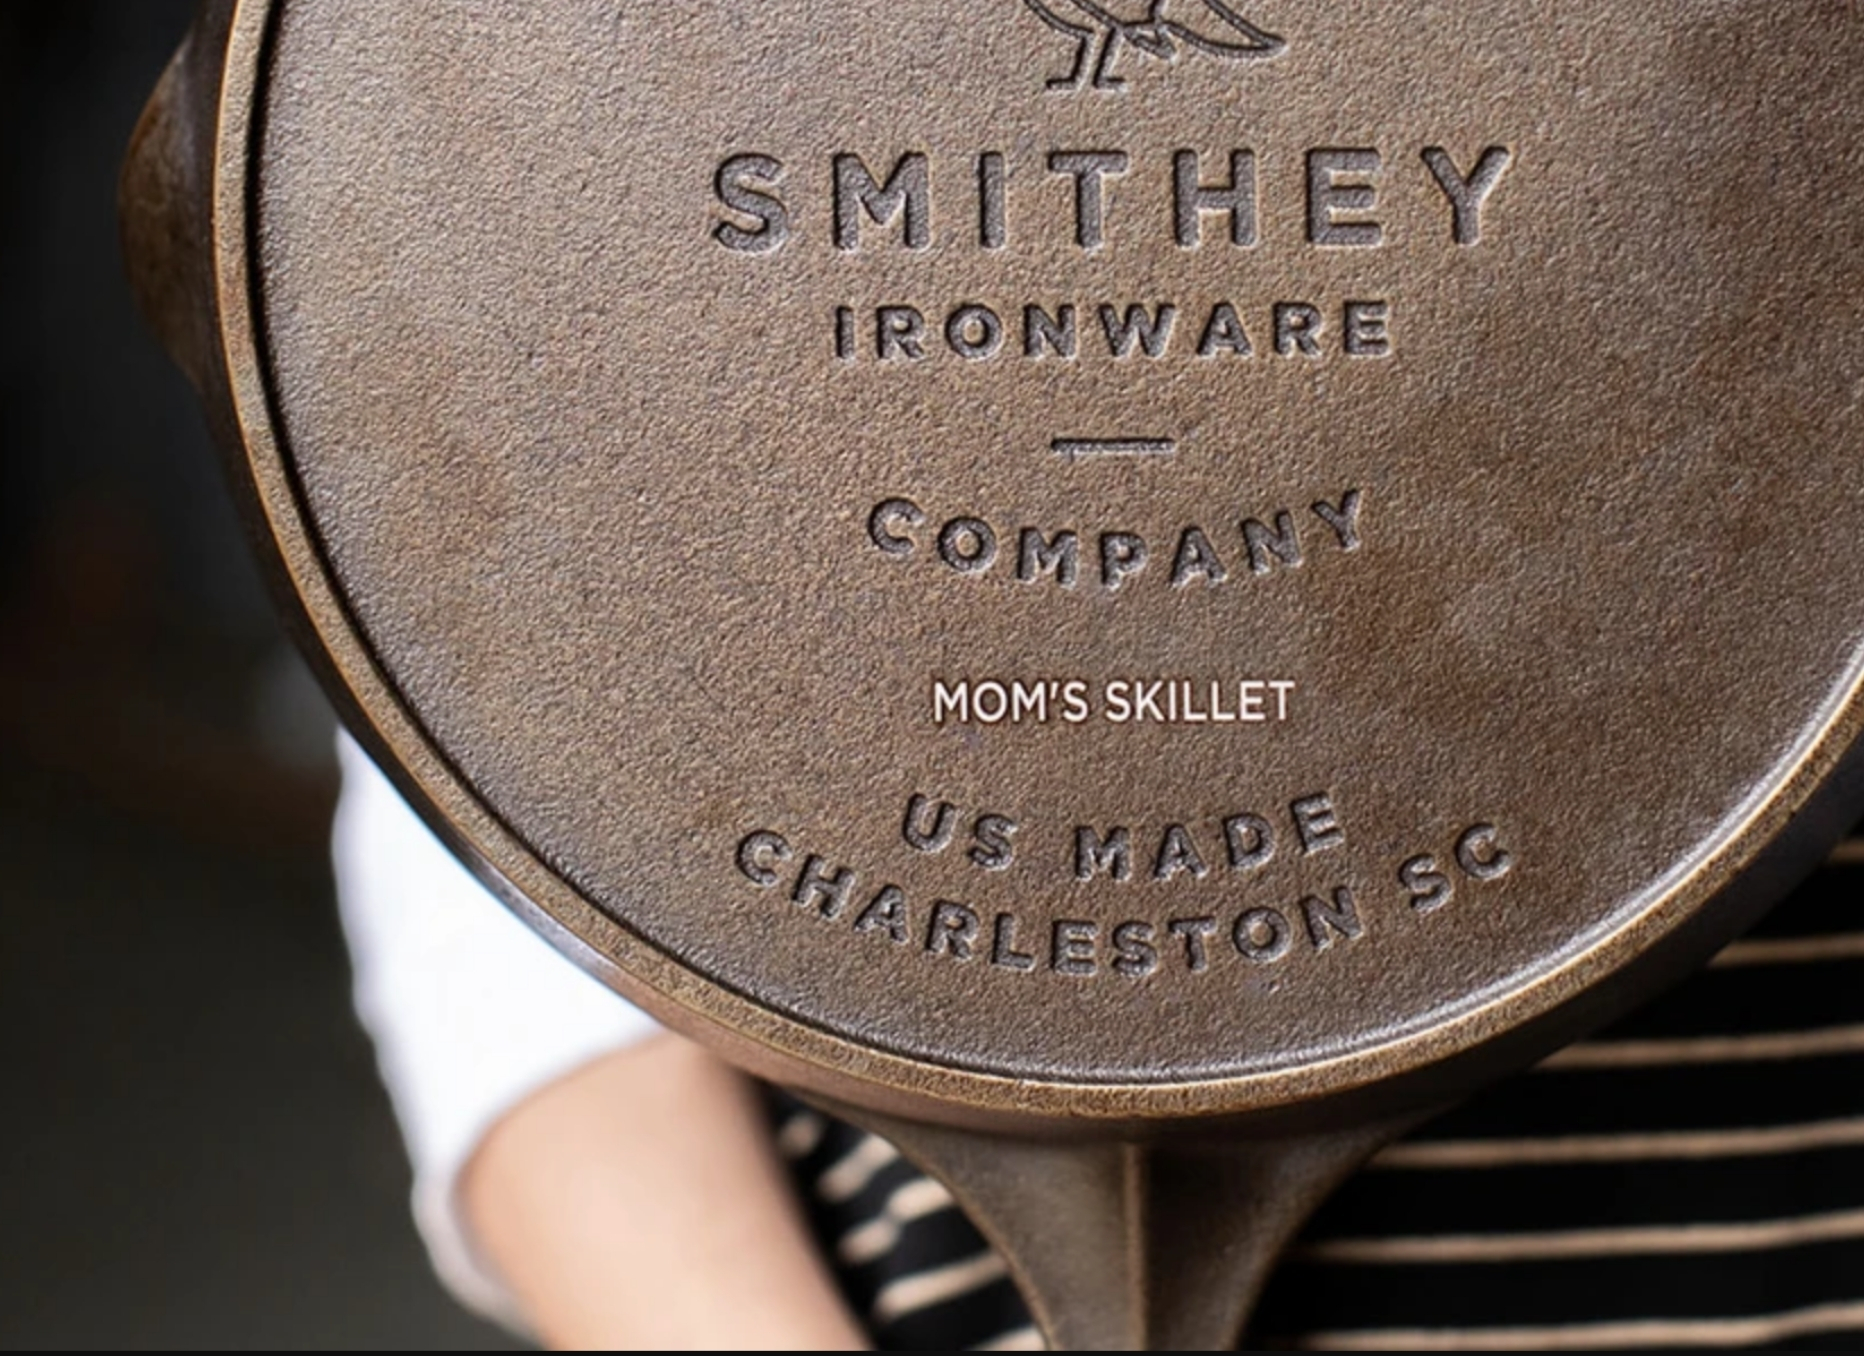 Smithey Ironware Customized Skillets